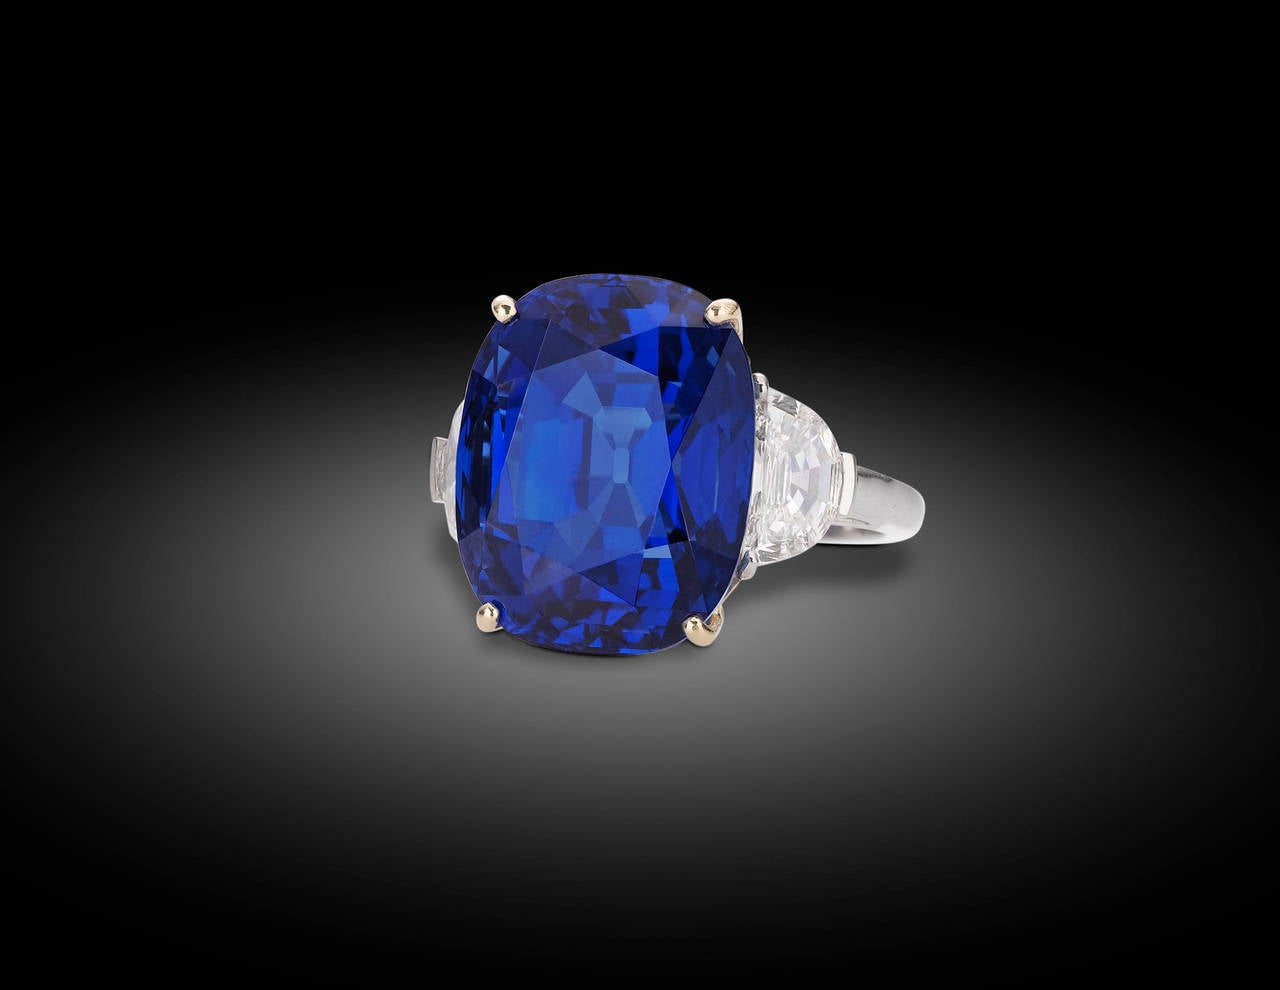 sapphire cl kate w engagement prong cz royal middleton jewelry blue ring bling color silver